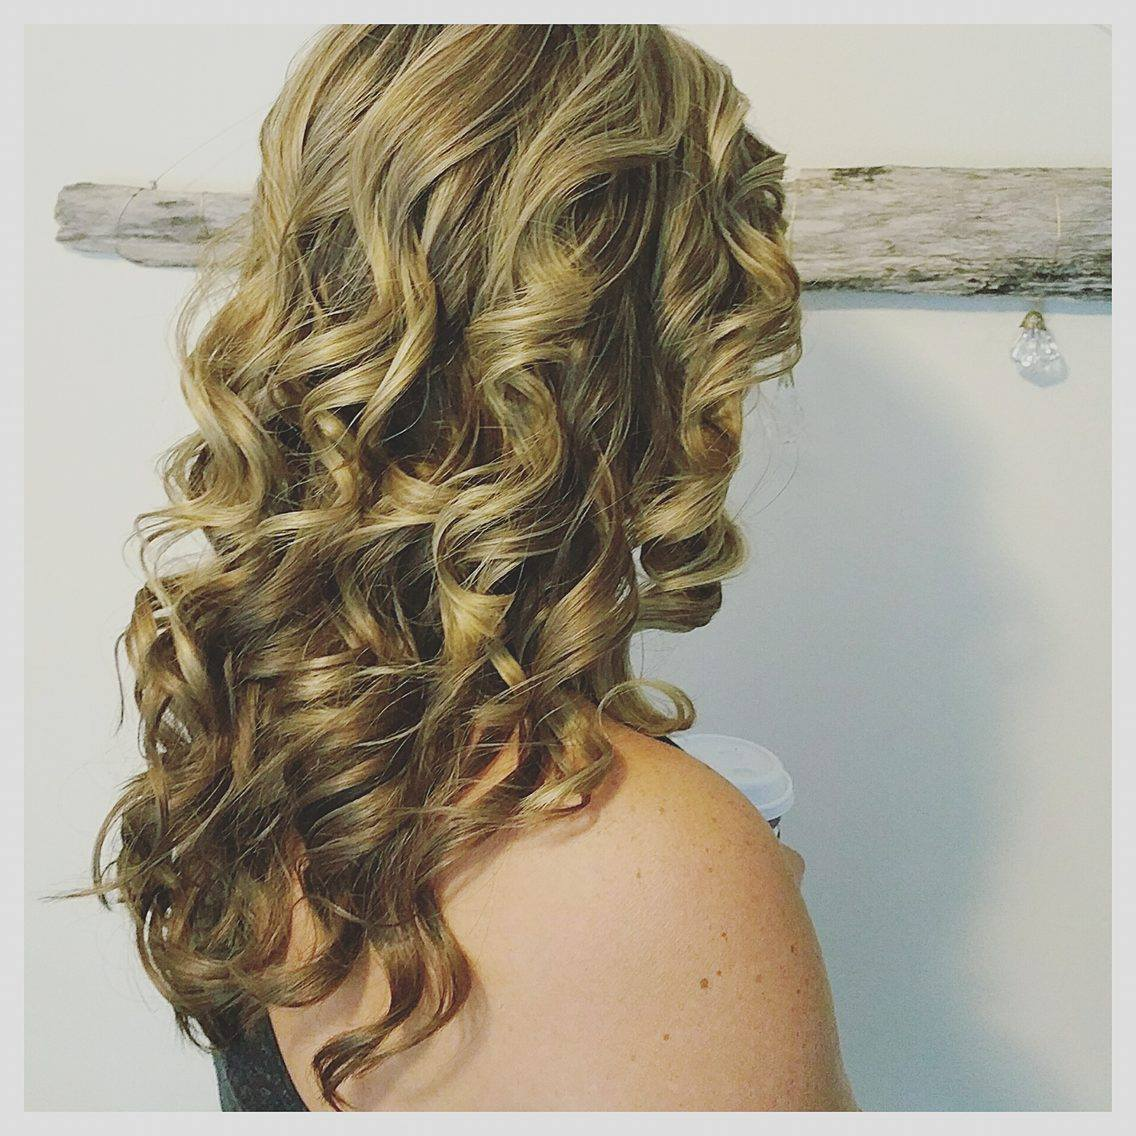 Bridal Hairstyles - A Cut Above Hair Salon in Mystic, Connecticut